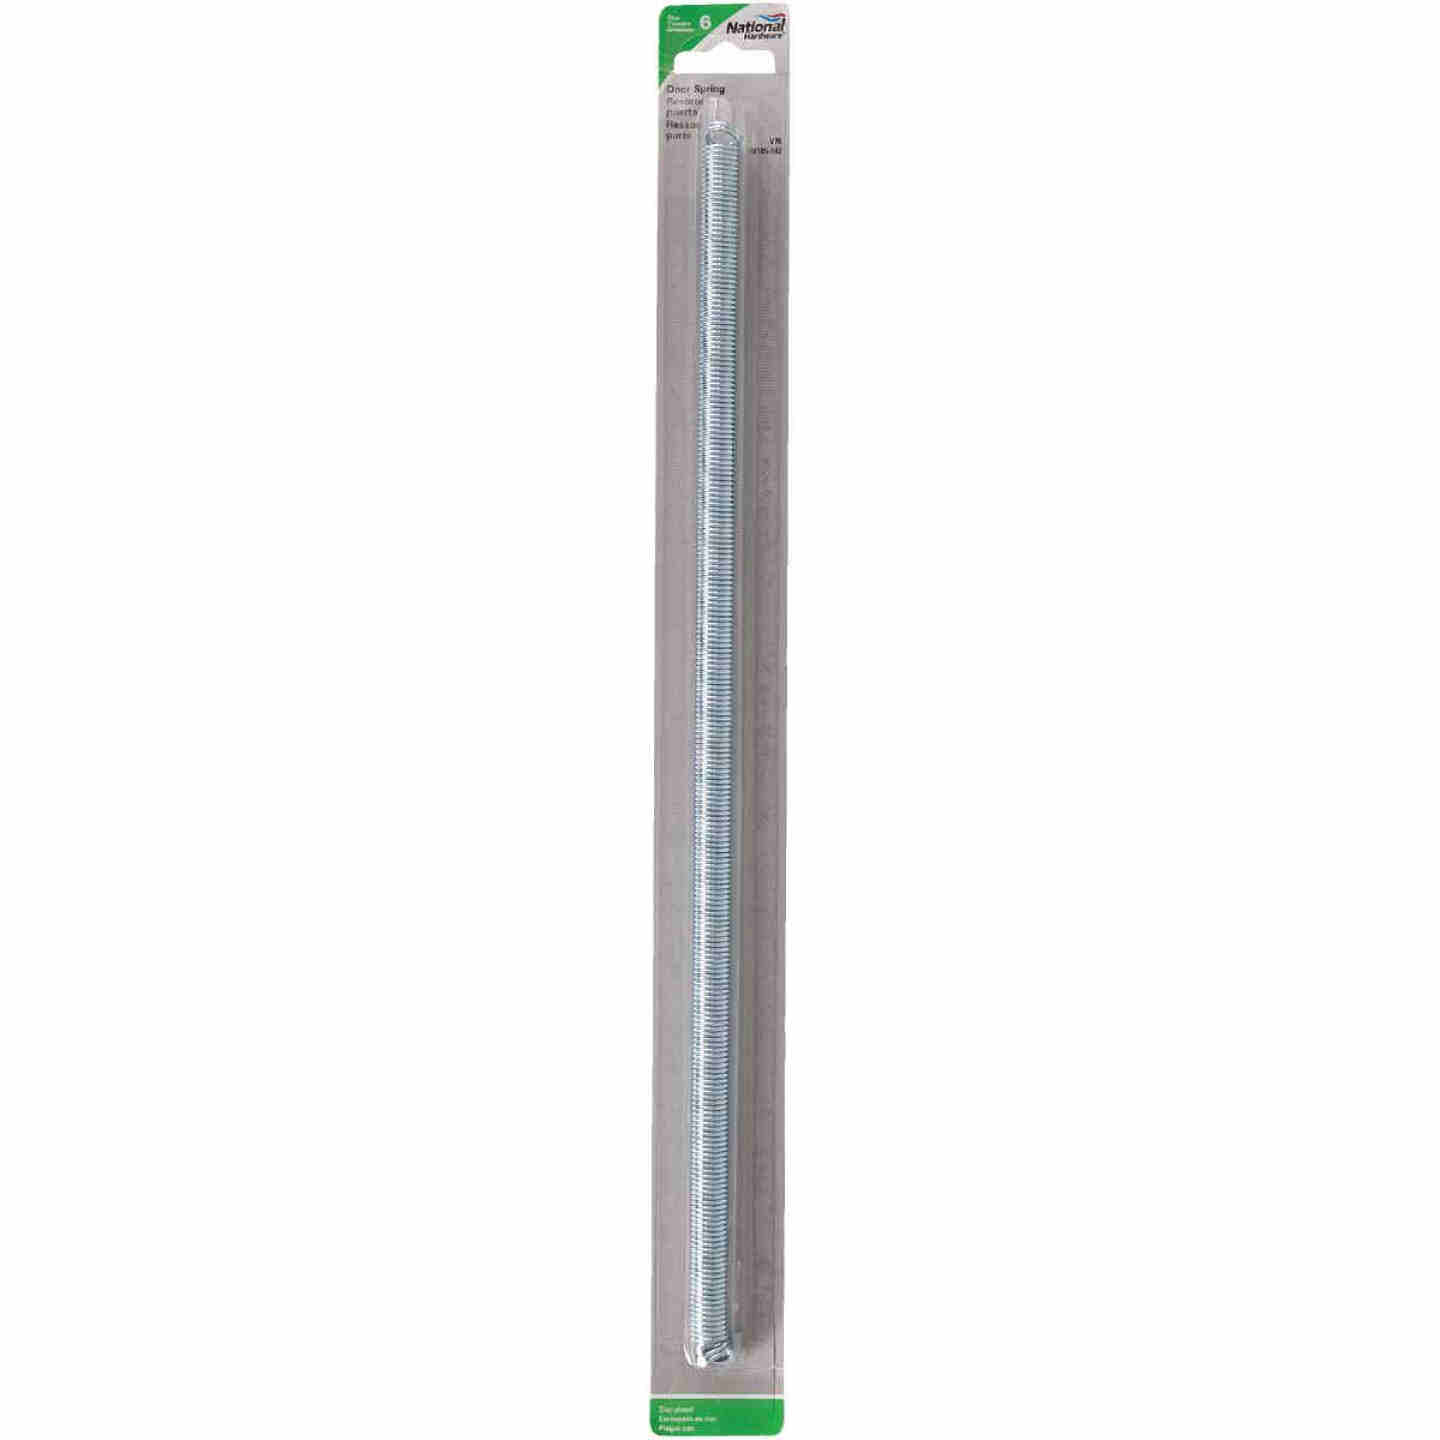 National 16 In. x 1/2 In. Gate And Door Spring Image 2